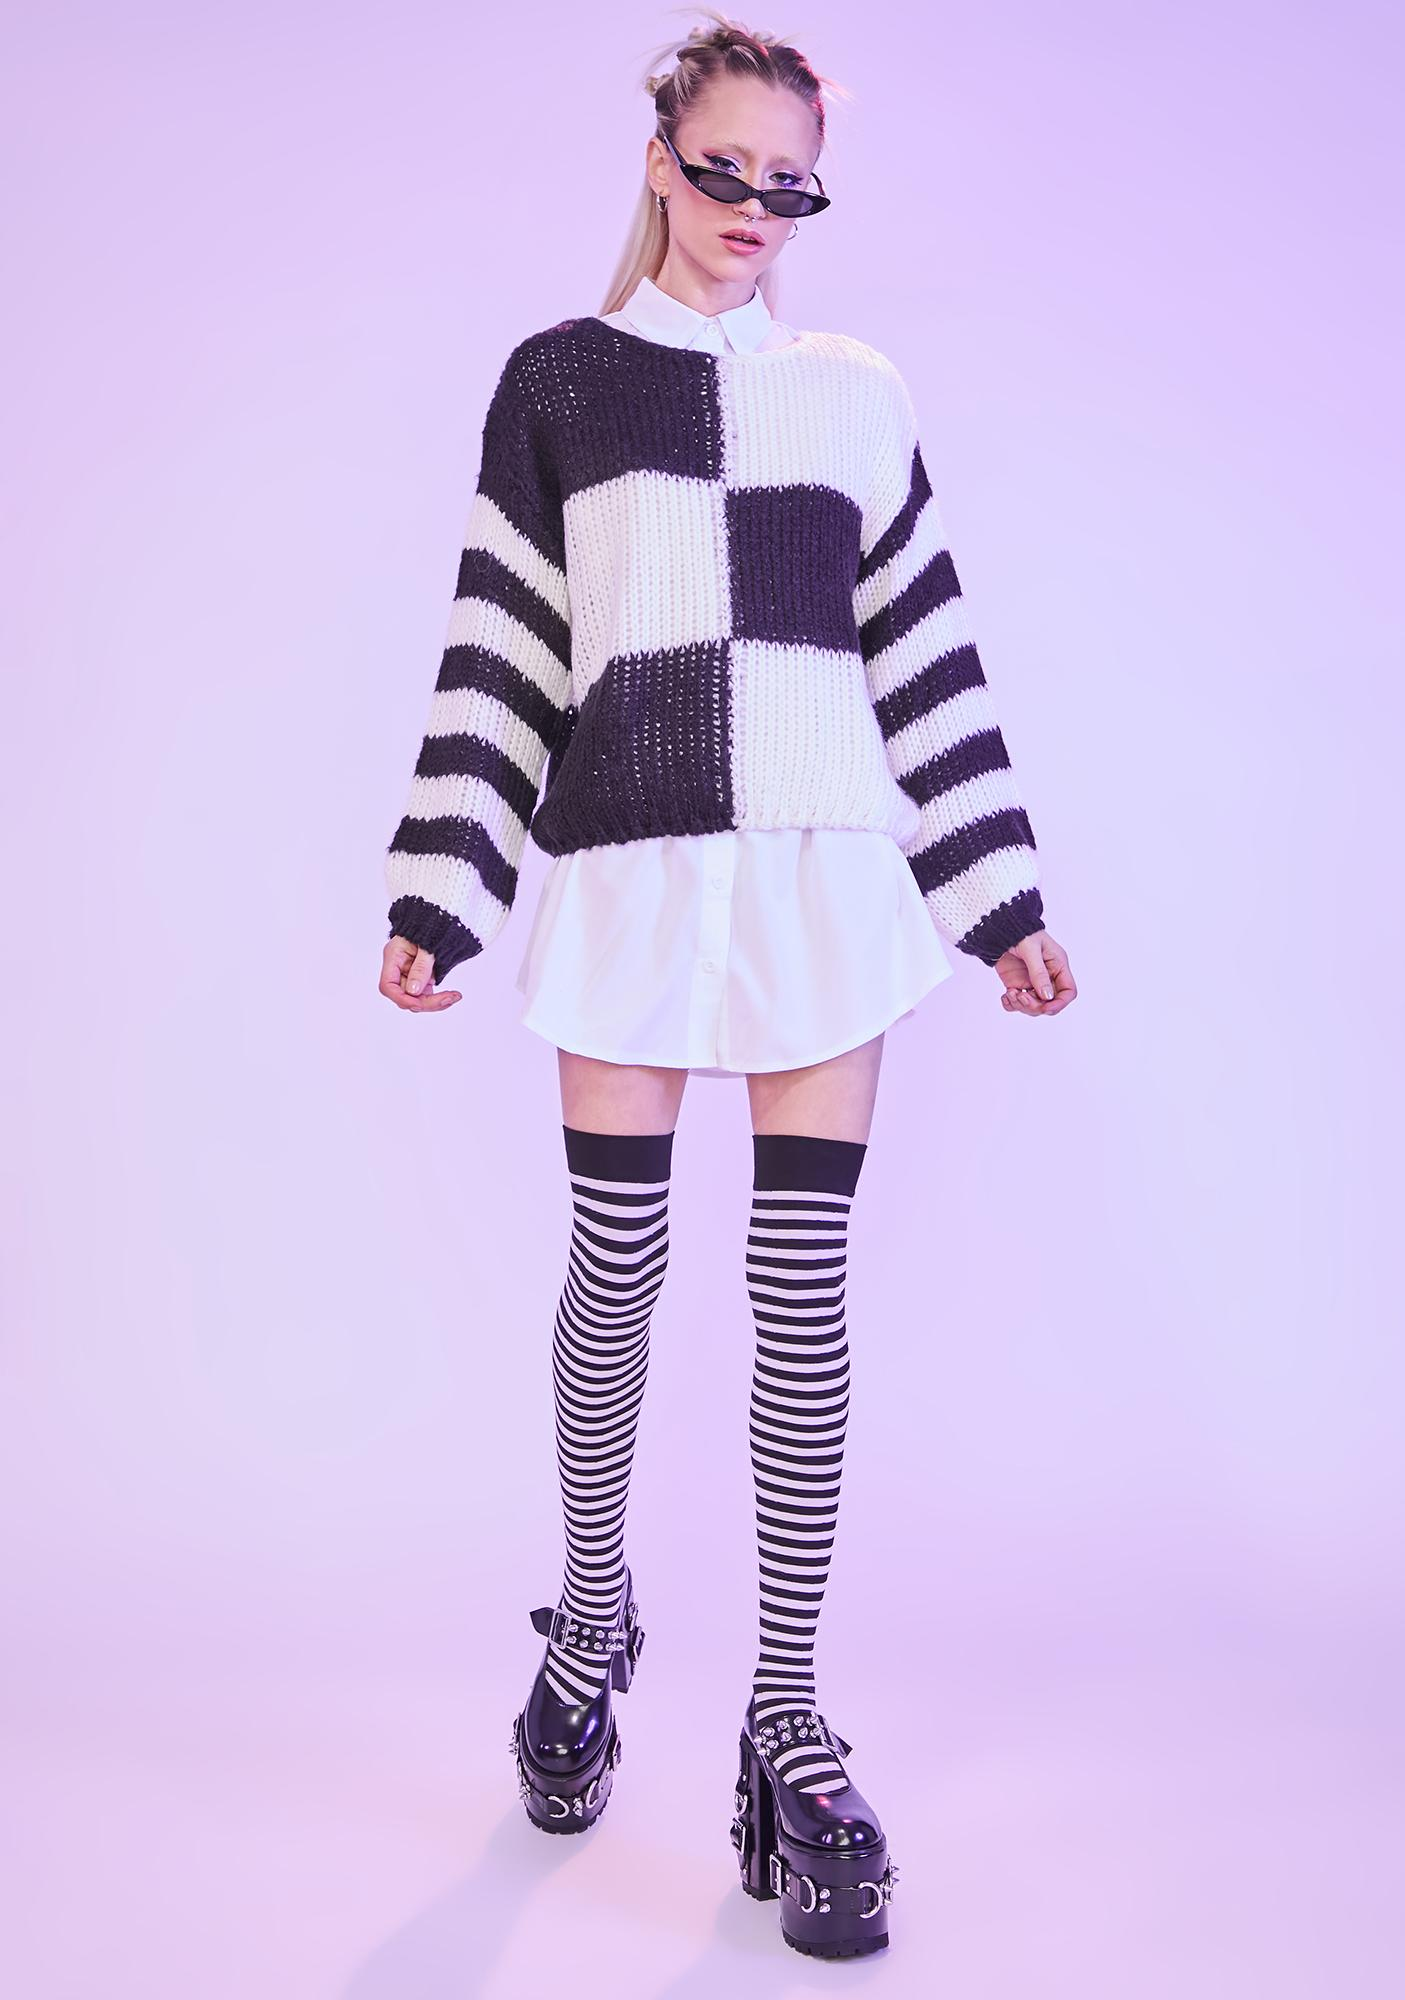 Larger Than Life Colorblock Knit Sweater